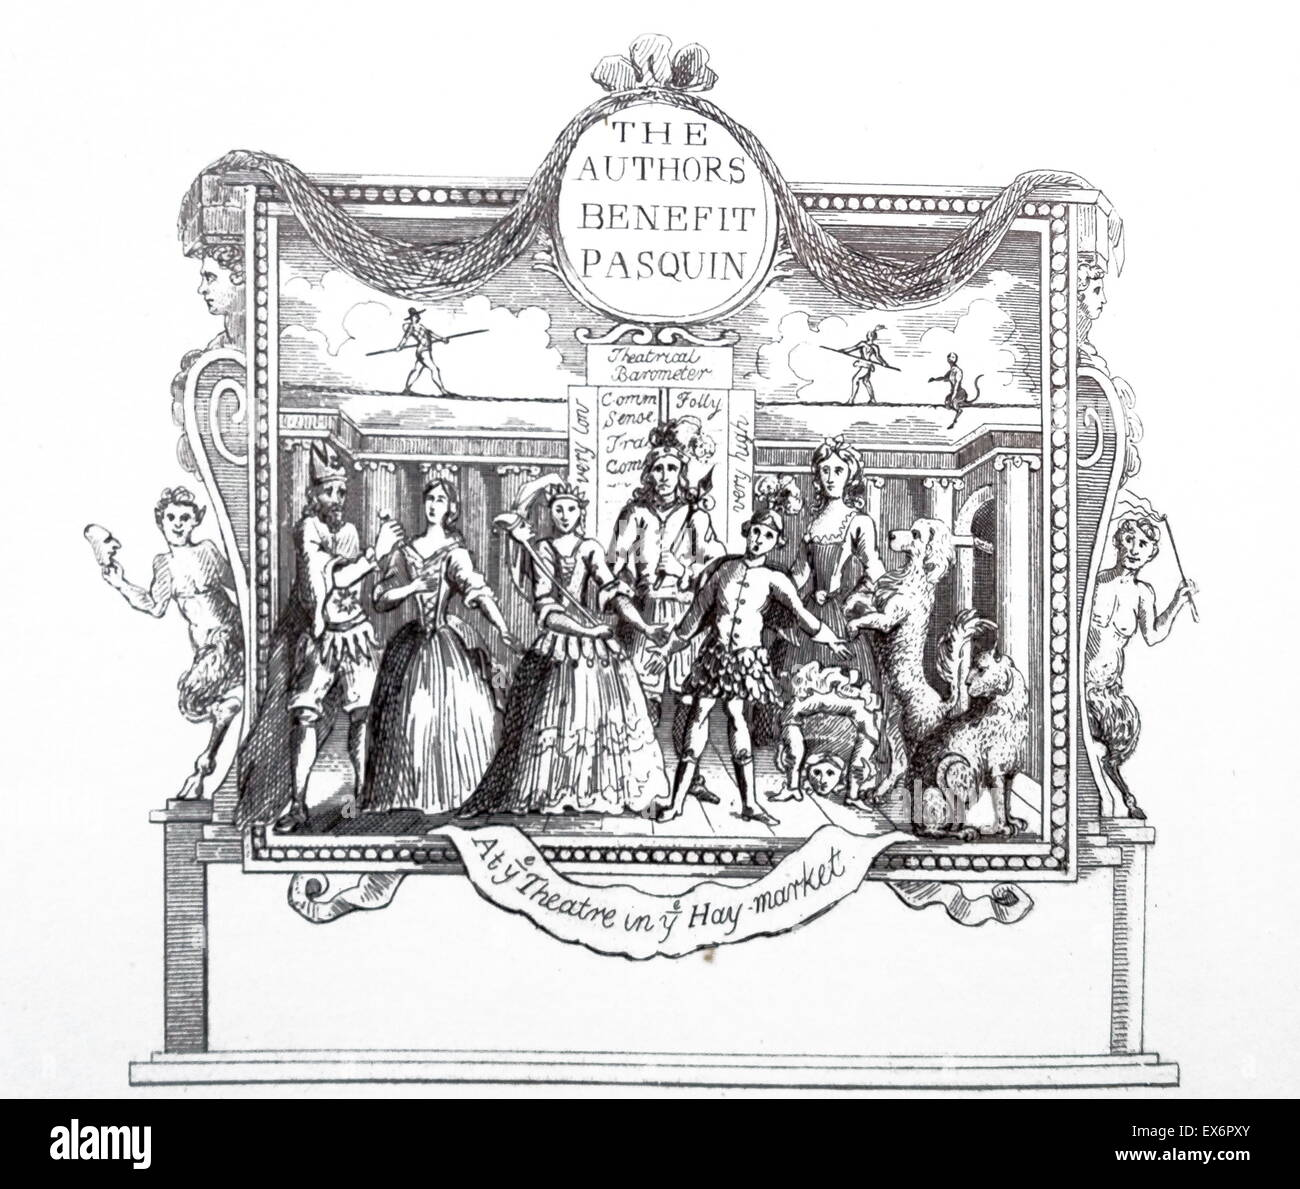 Engraving by British artist & engraver, William Hogarth 1697–1764: Ticket for the Theatre - Stock Image